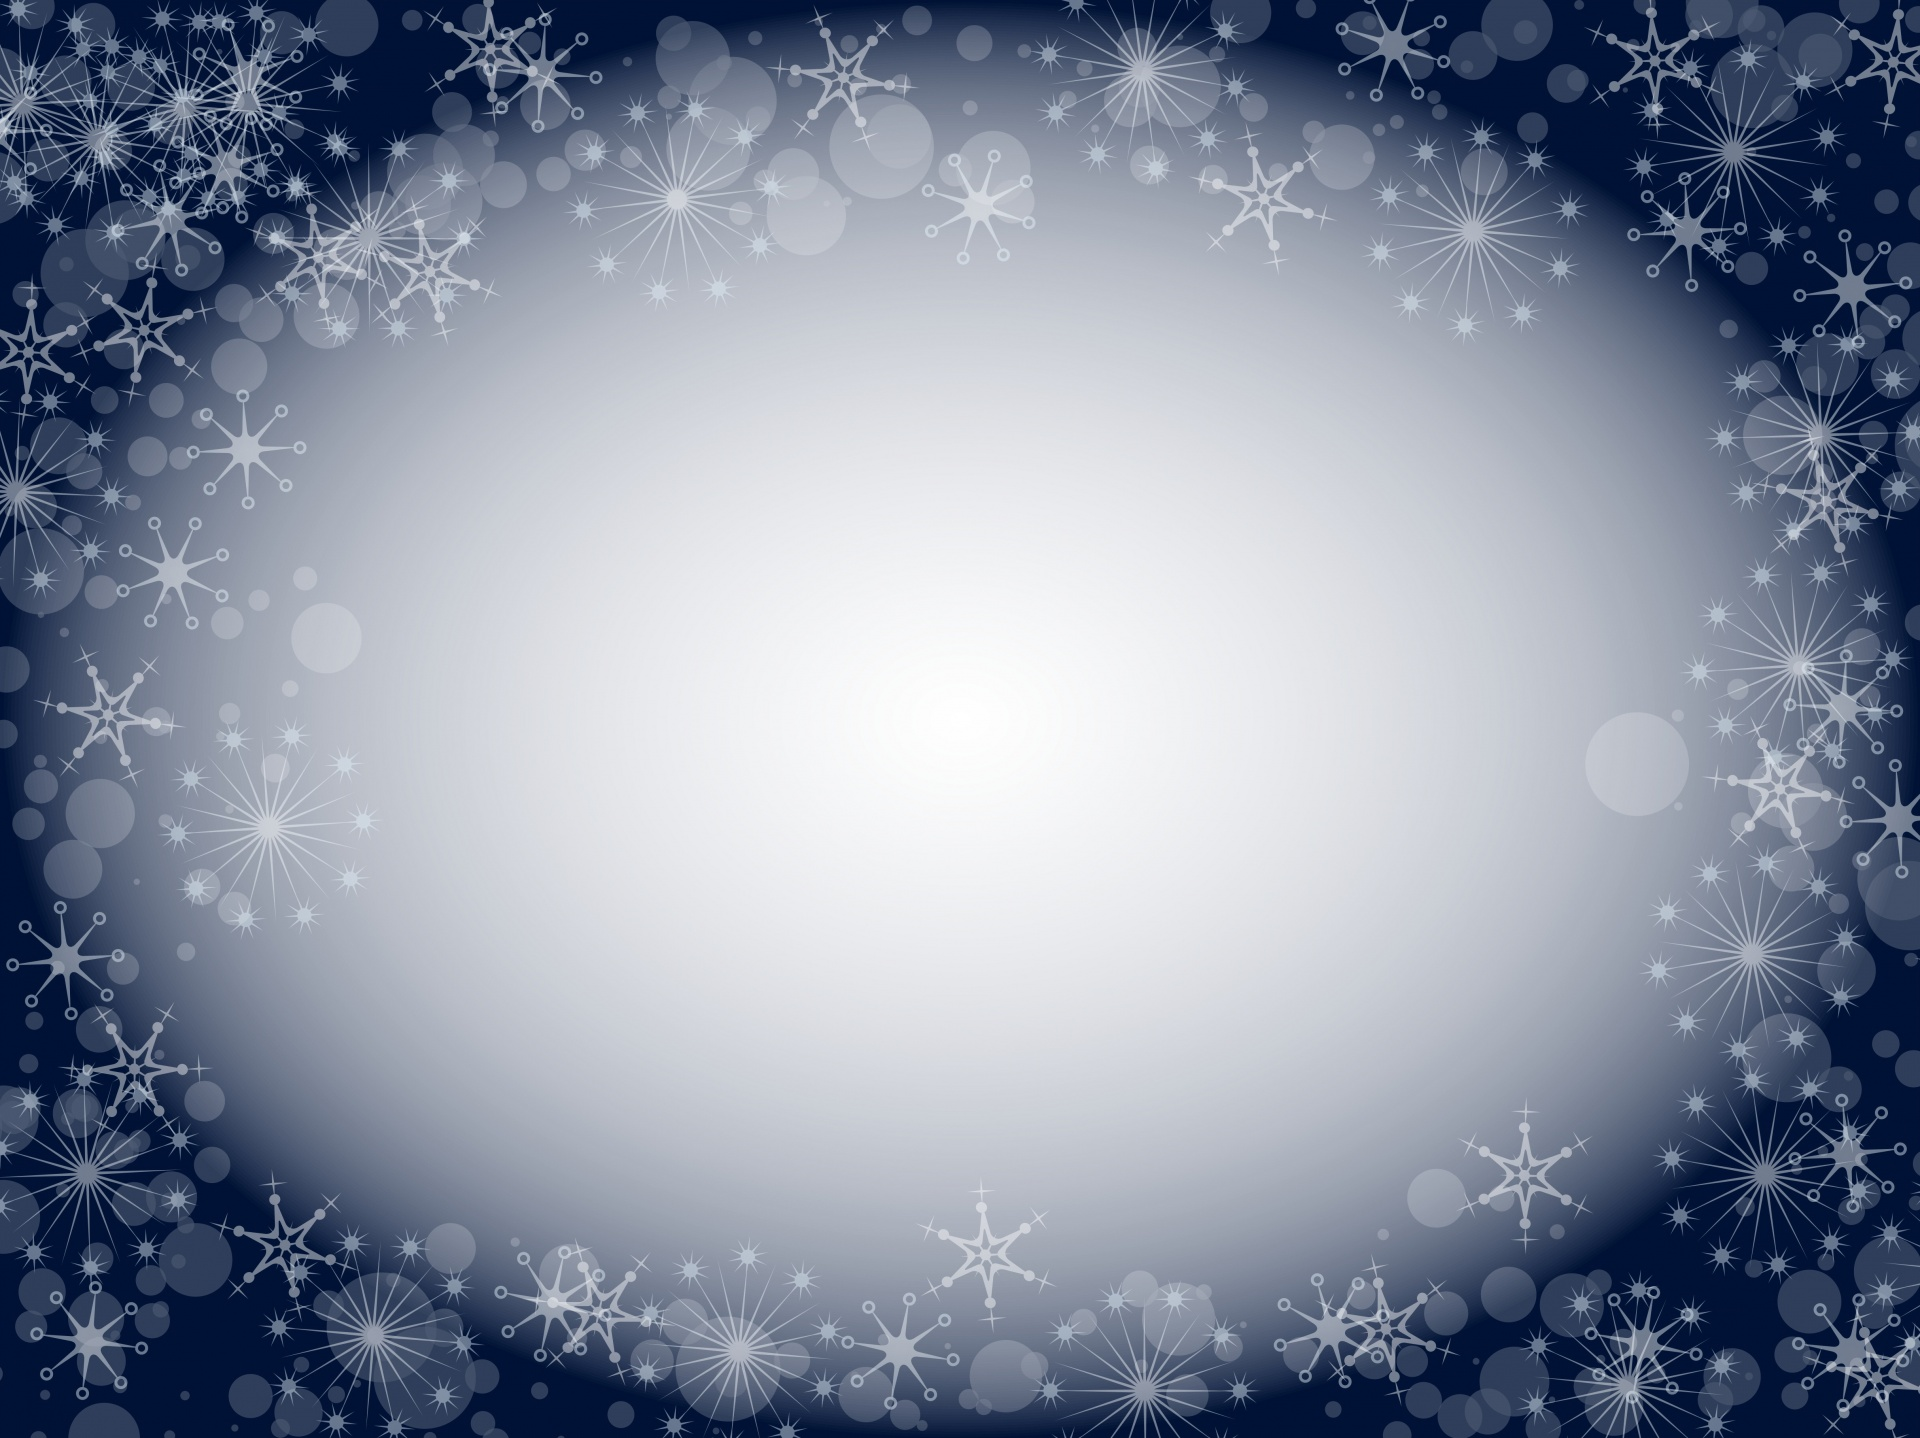 snowflake frame wallpapers high quality